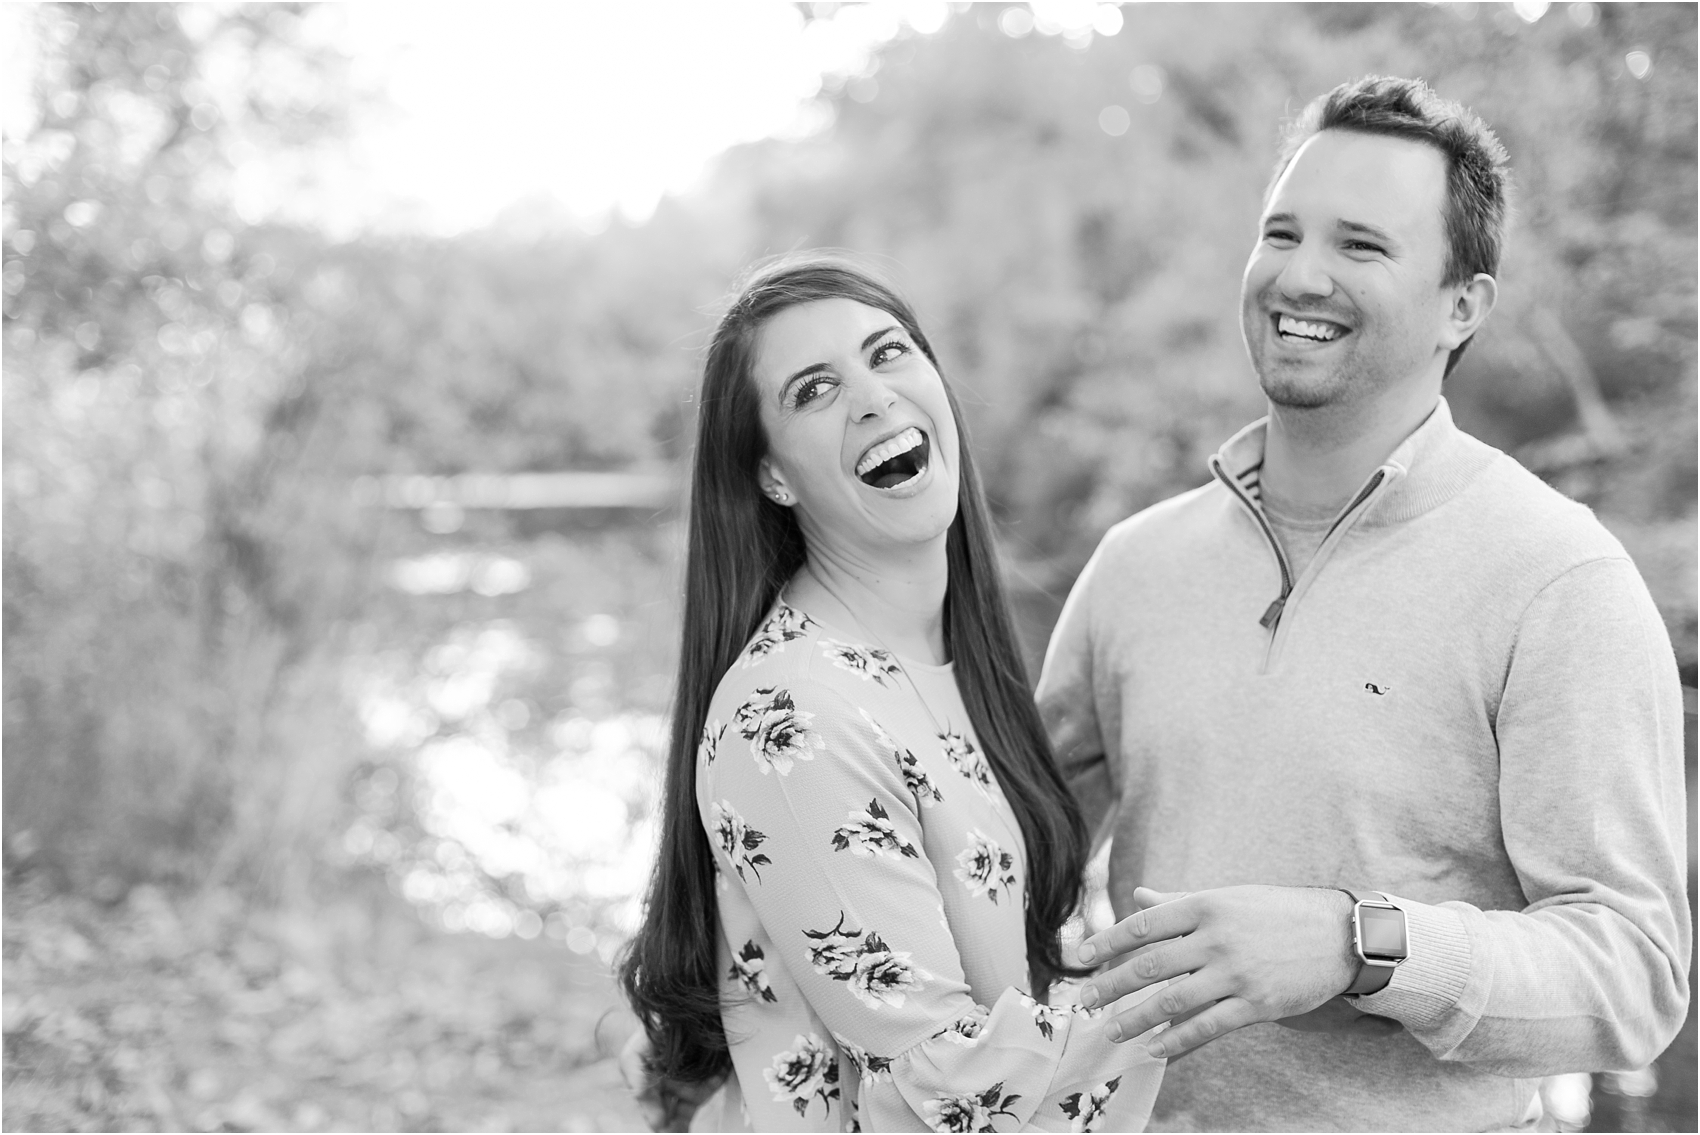 relaxed-autumn-engagement-photos-at-hudson-mills-metropark-in-dexter-mi-by-courtney-carolyn-photography_0039.jpg